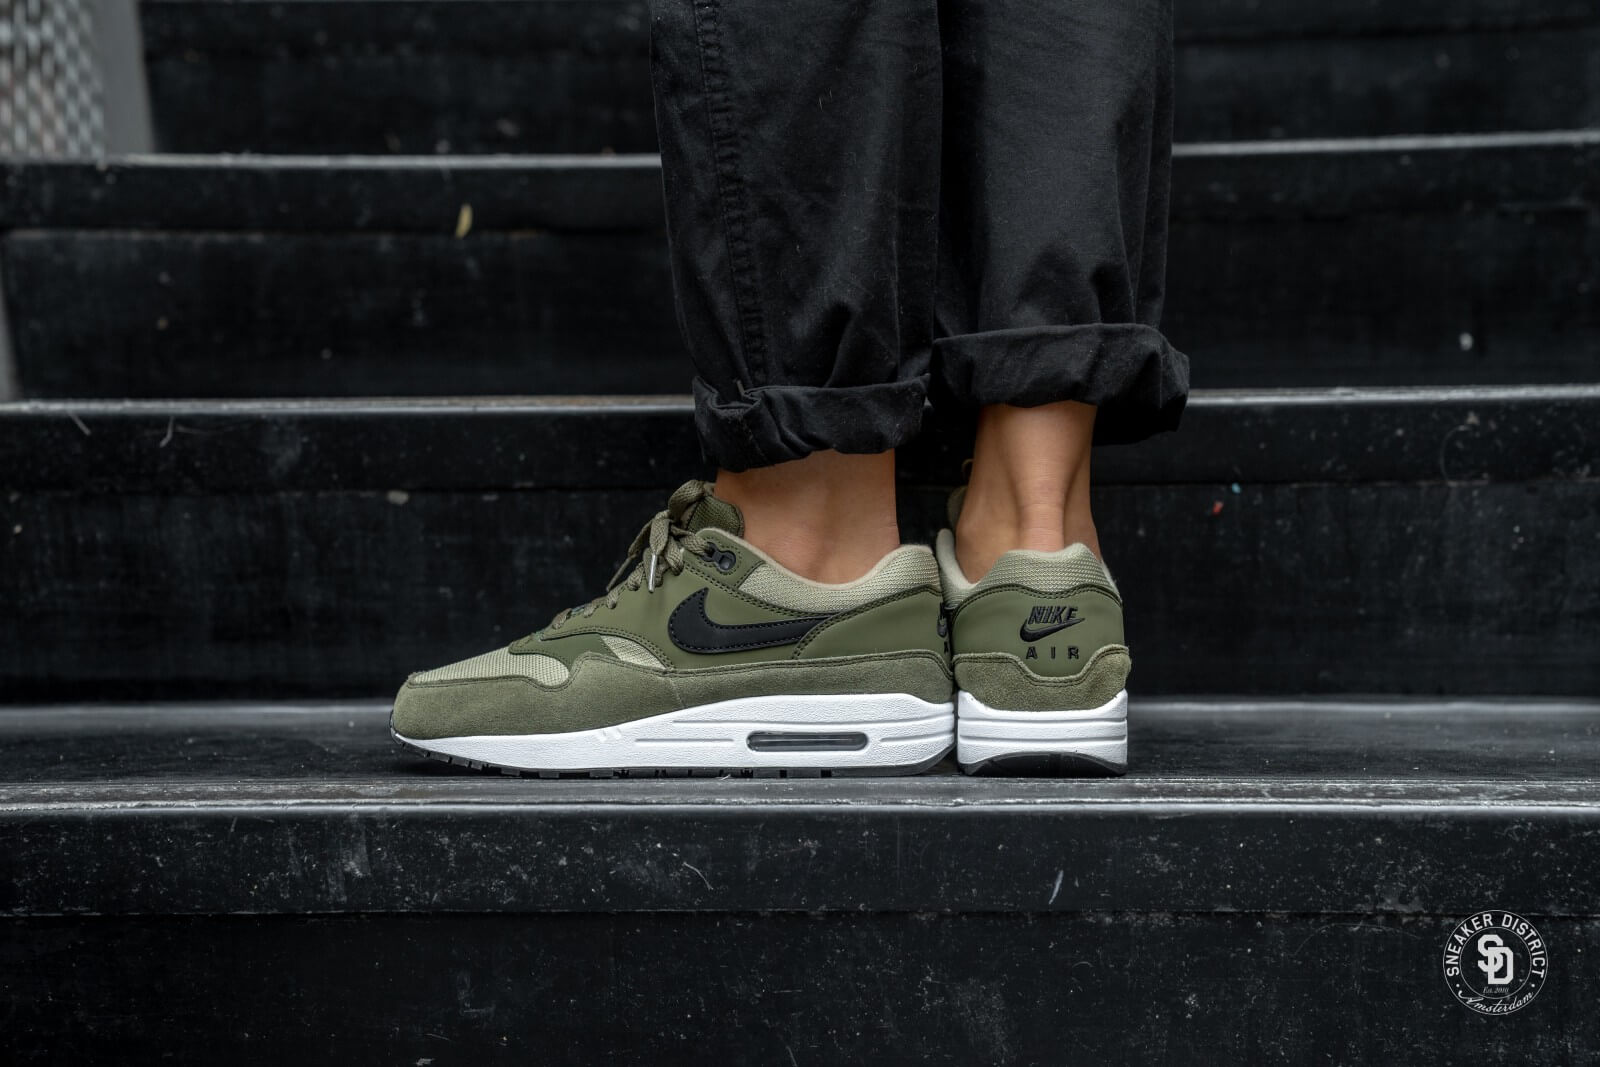 Nike Women's Air Max 1 Olive Canvas/Black-Neutral Olive